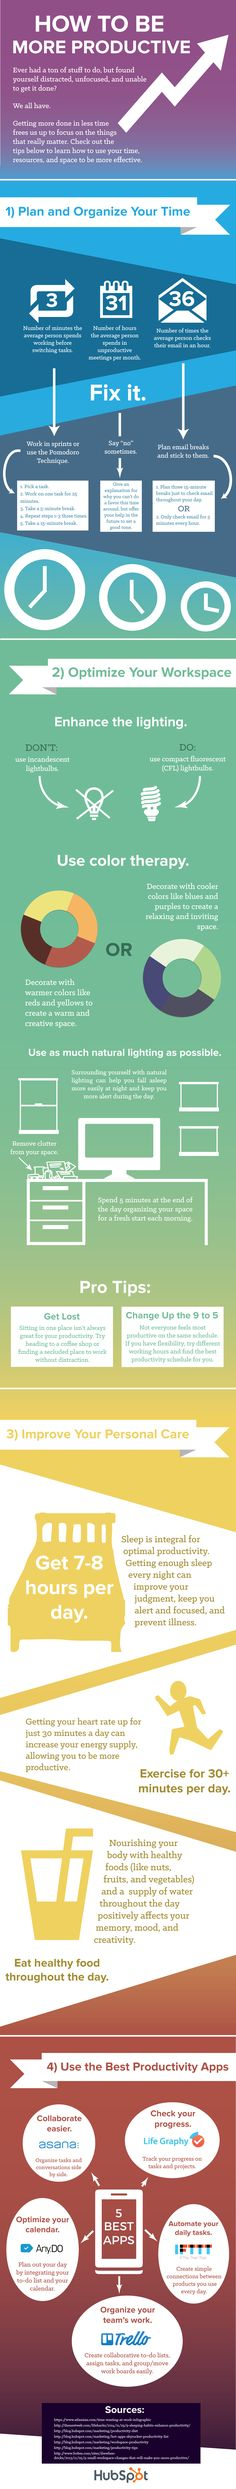 13 Productivity Tips for the Busy Professional (Infographic by @HubSpot)